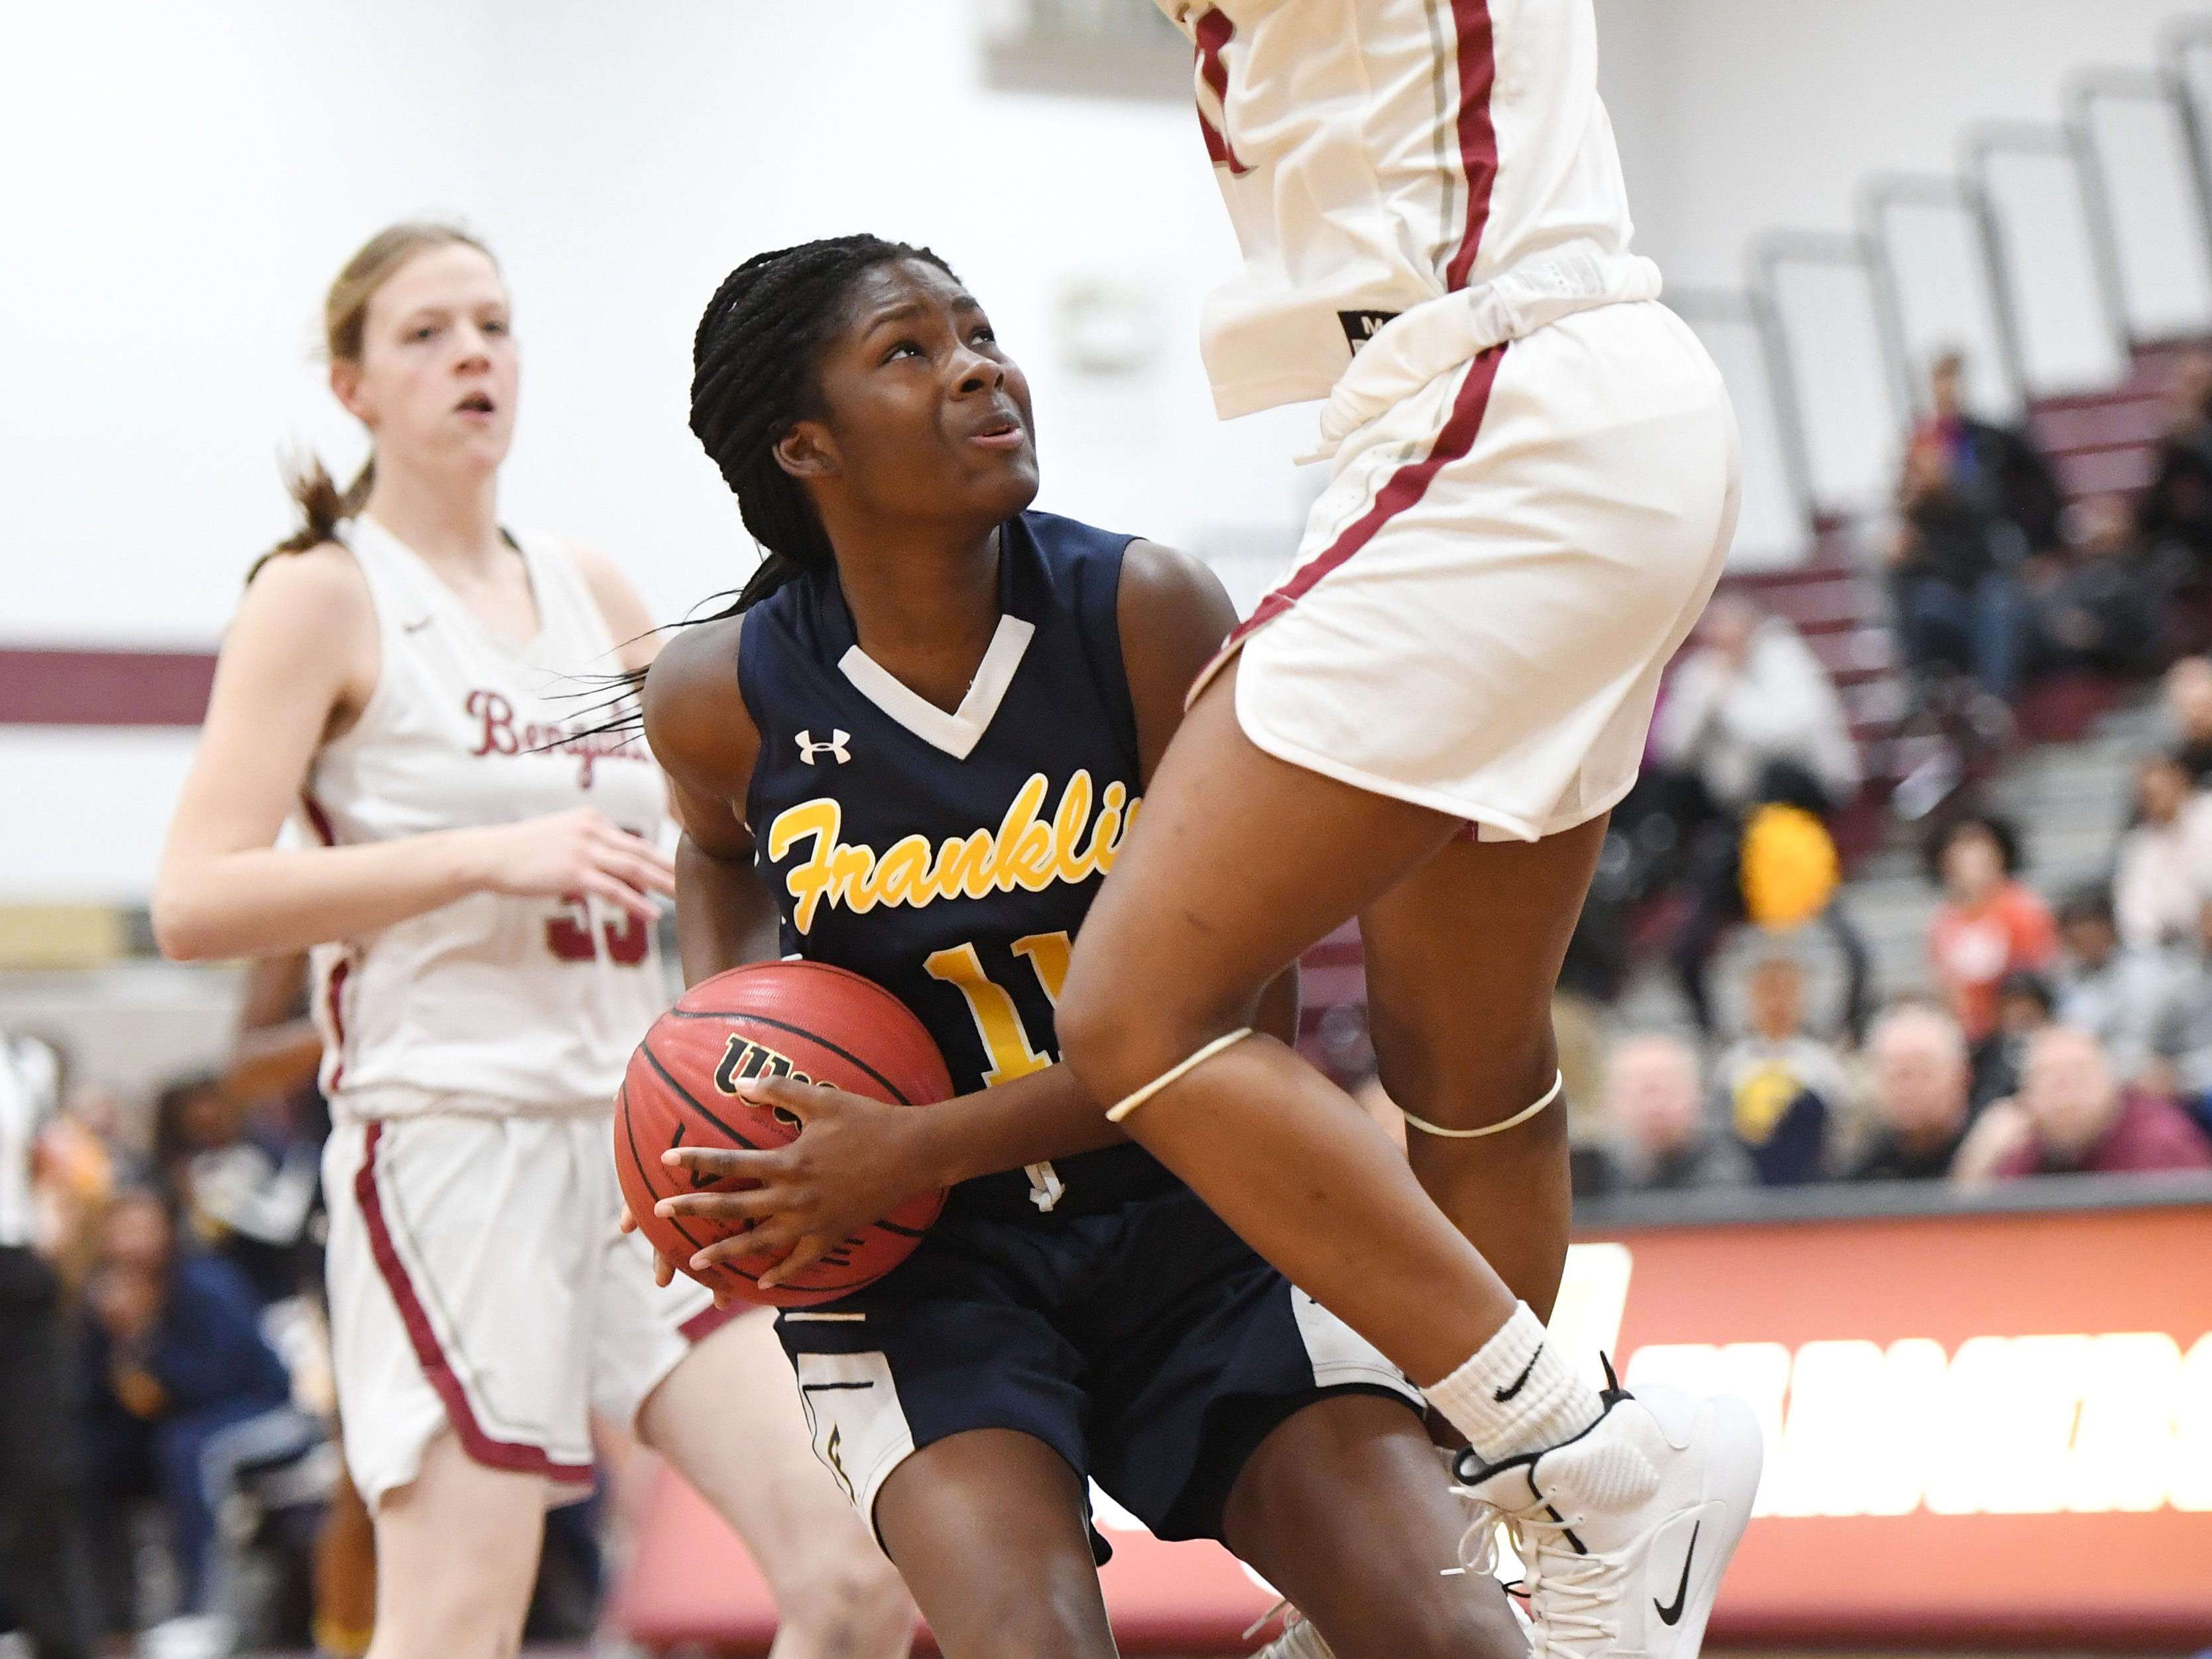 Franklin vs. Bloomfield in the girls basketball Group IV semifinal at Union High School on Thursday, March 7, 2019. F #11 Kennedy Schneck drives to the basket.